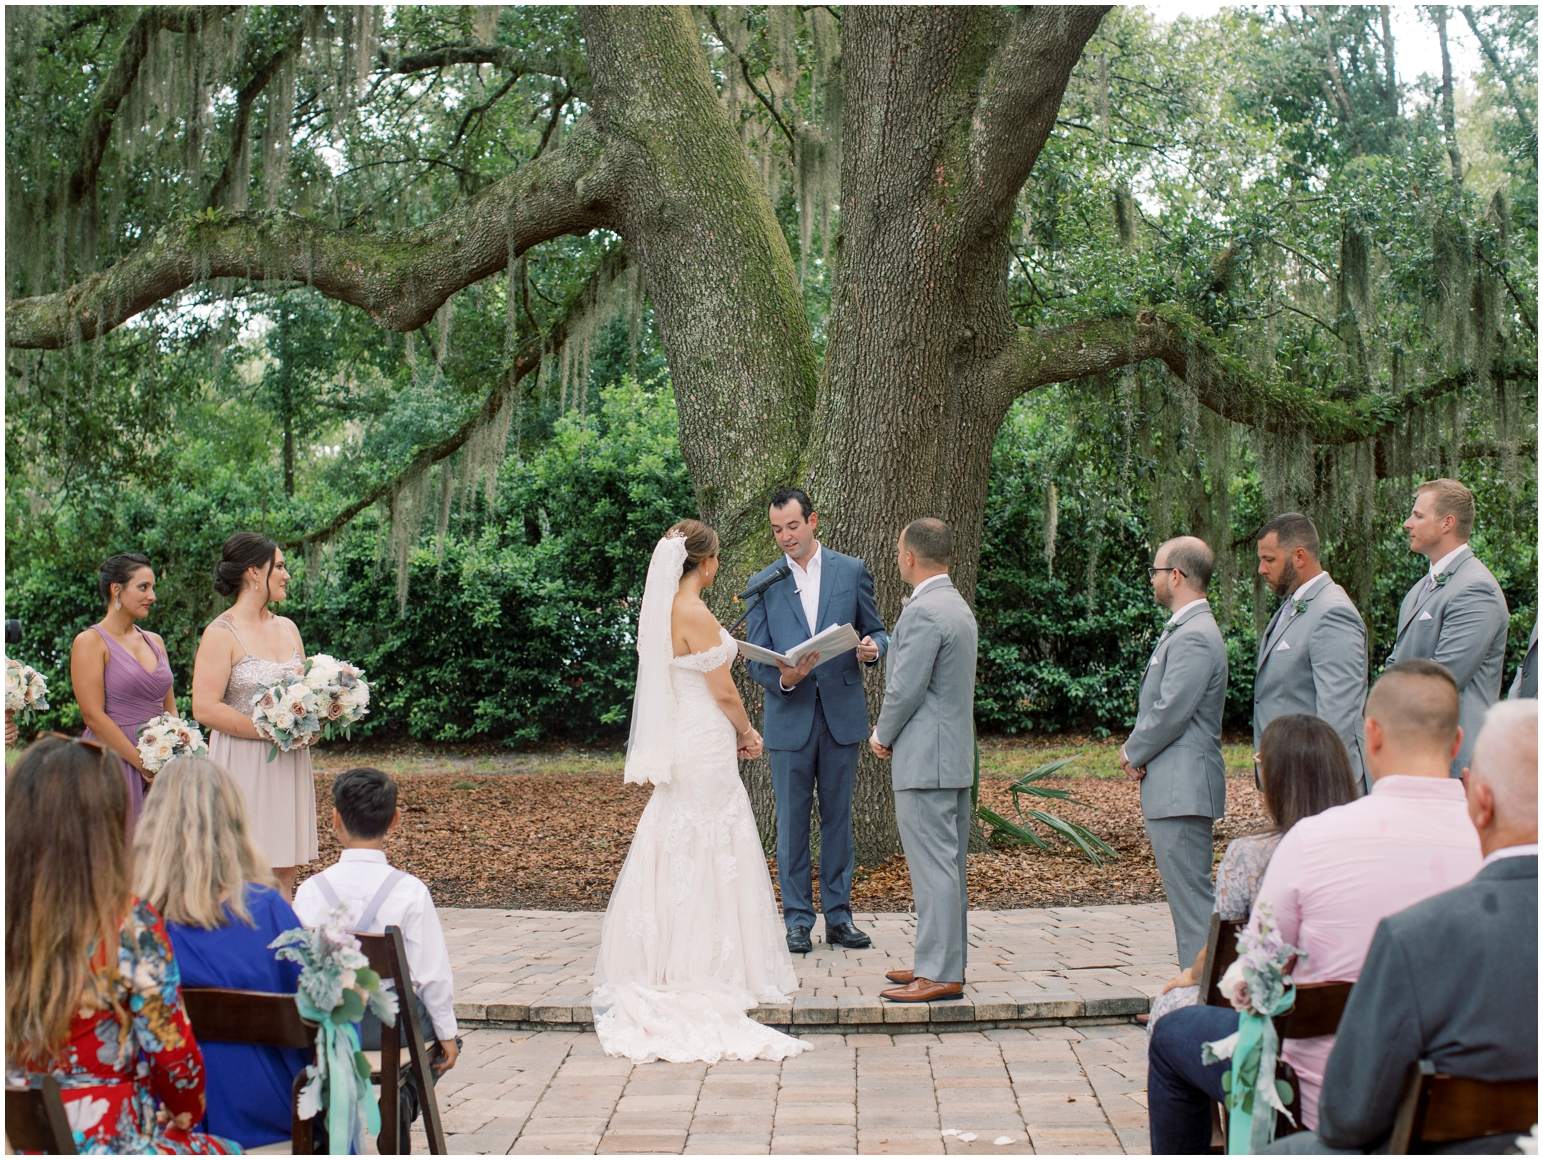 Lisa Silva Photography- Jacksonville, St Augustine, Fernandina Beach, Amelia Island, Ponte Vedra Beach, North East Florida Fine Art Film Photographer- Ashley and Shawn's wedding at bowing oaks plantation_0067.jpg